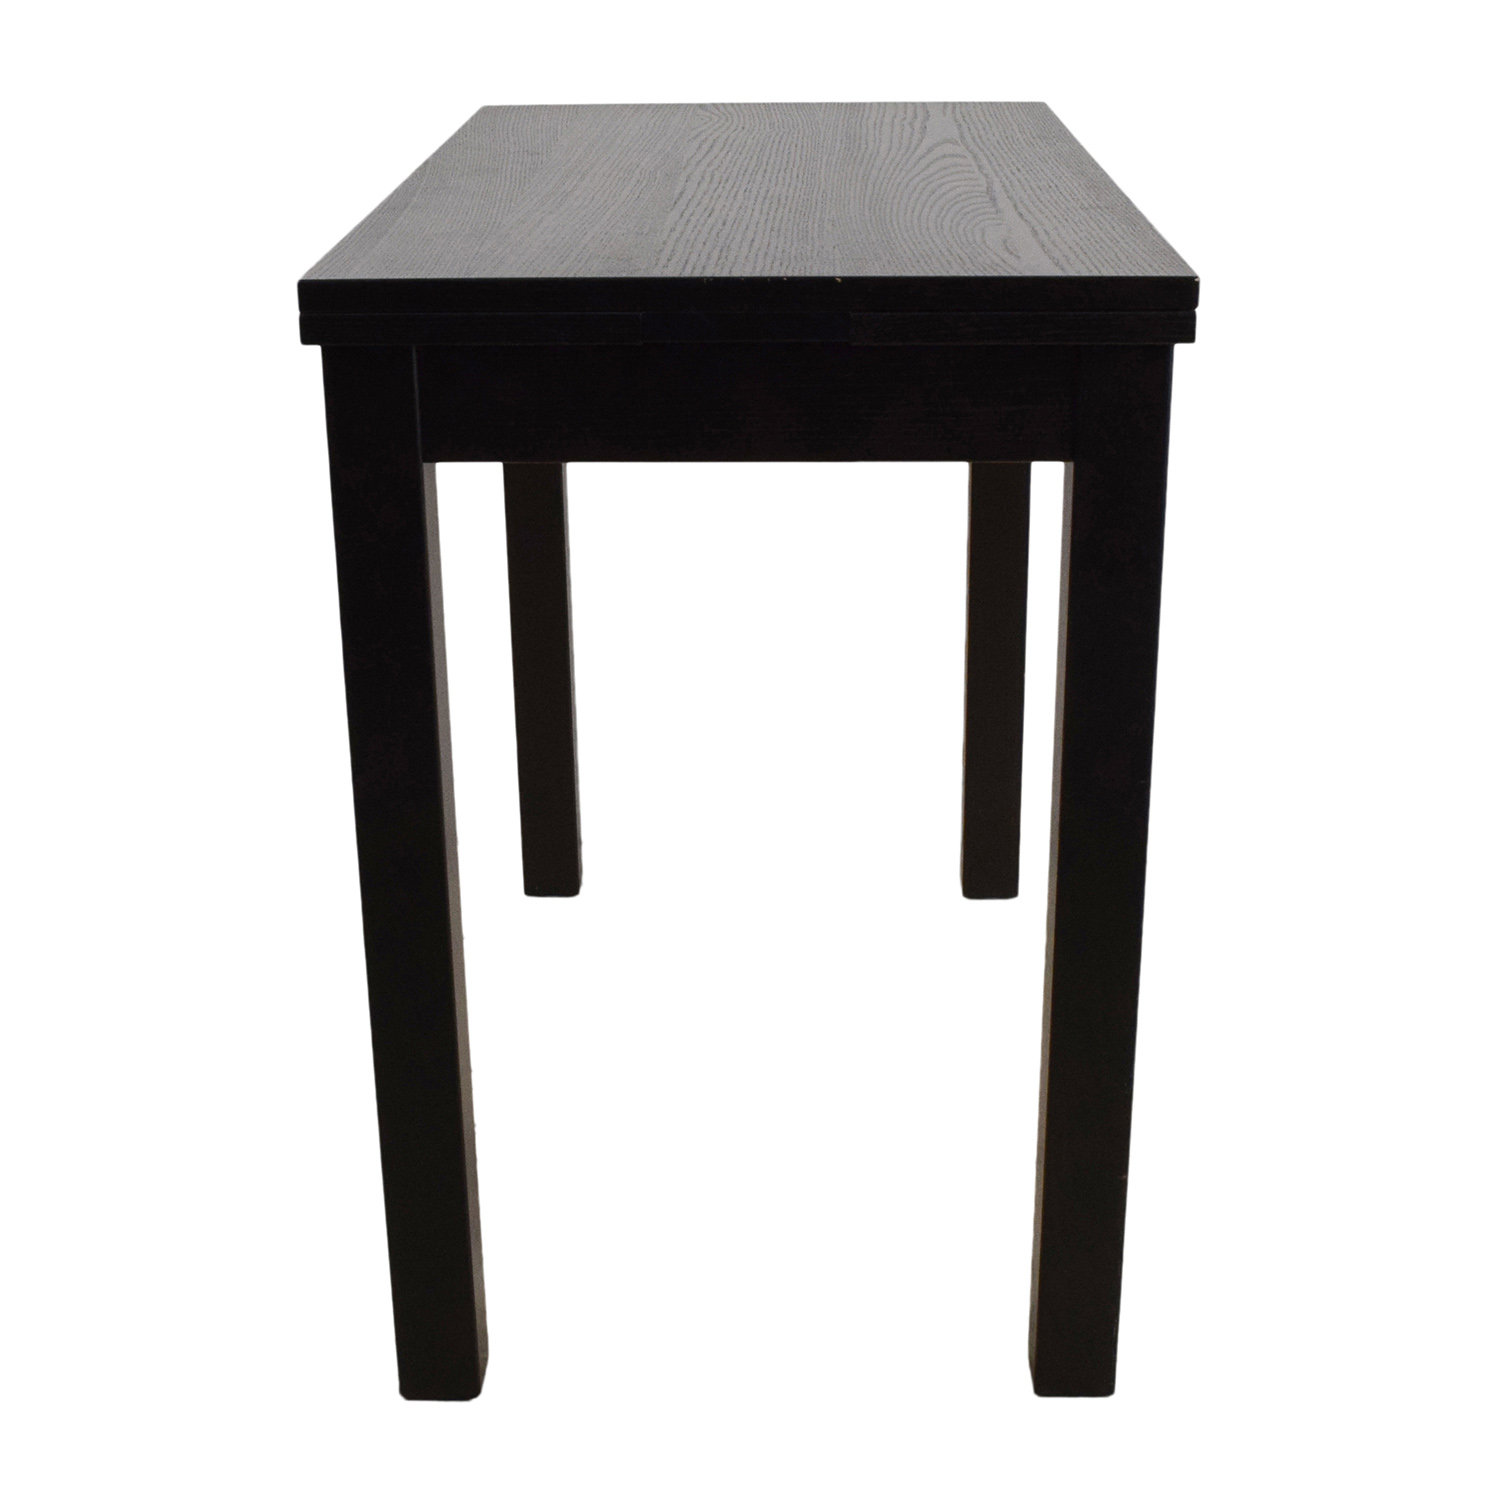 off target winsome pullman extendable wood table tables black end ashley furniture kids used lexington bedroom nightstands yard round plastic garden san bernardino nest